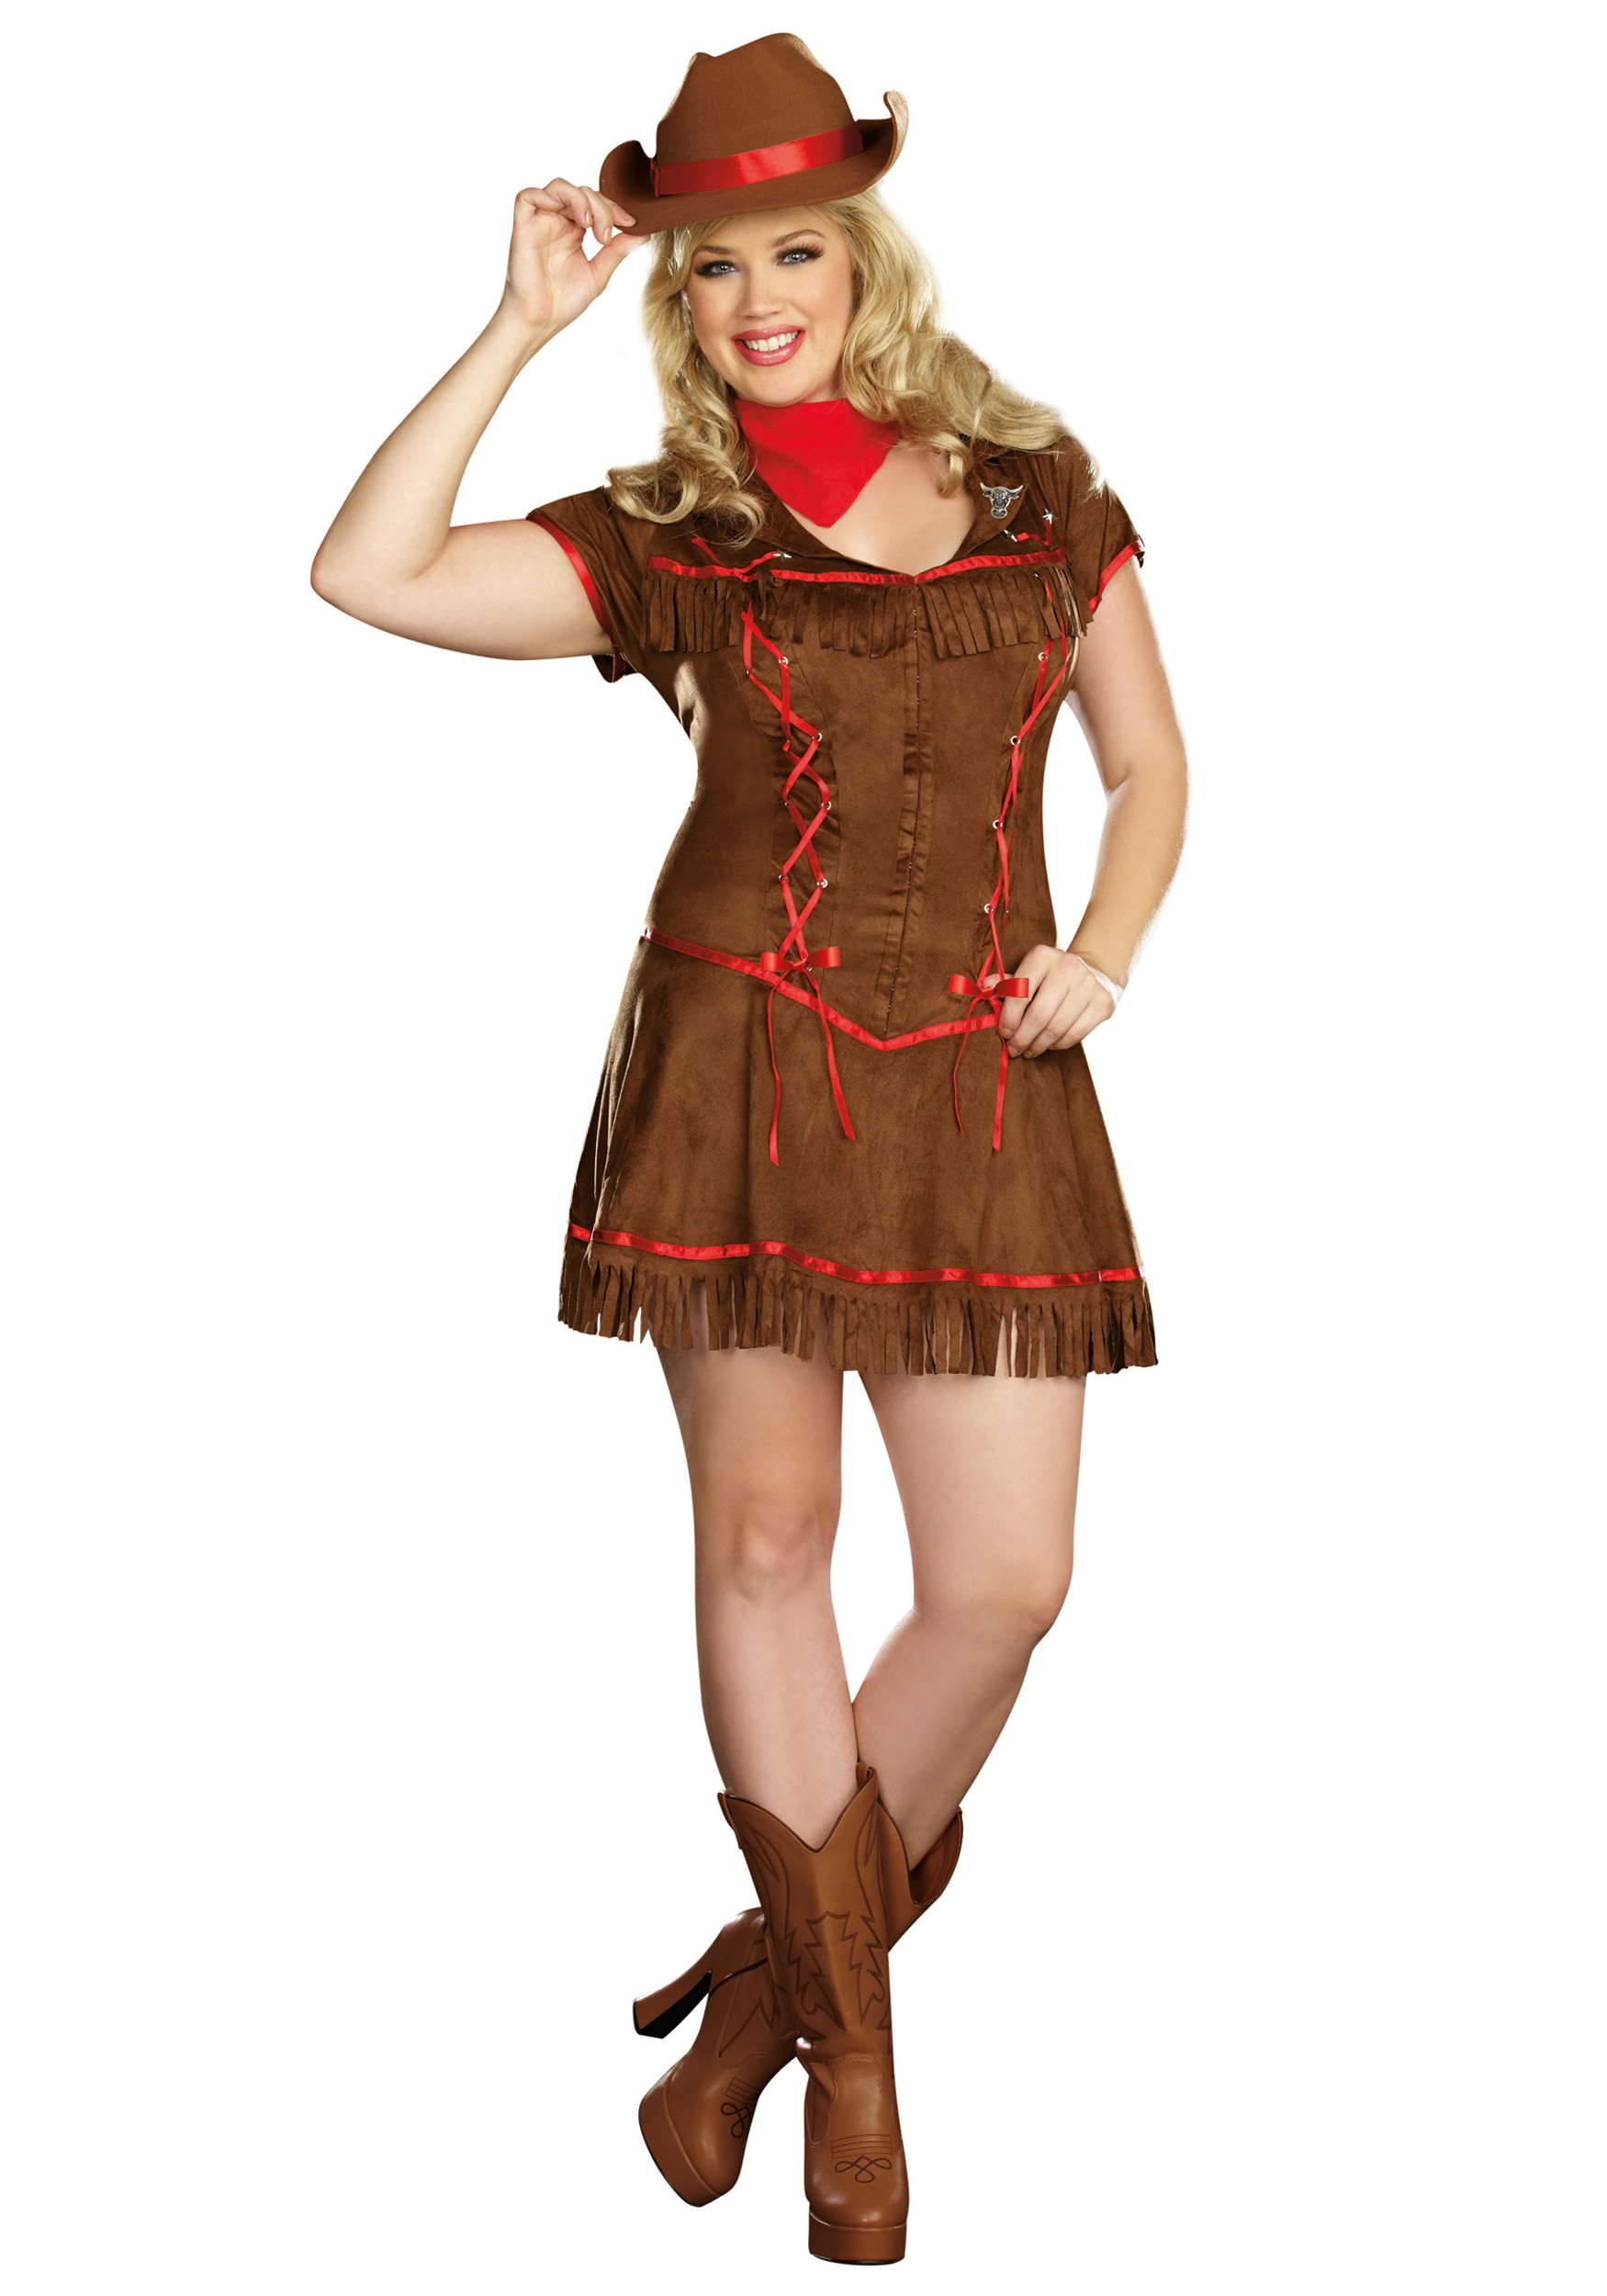 Plus Size Giddy Up Cowgirl Costume  sc 1 st  Halloween Costumes & Plus Size Giddy Up Cowgirl Costume - Halloween Costumes